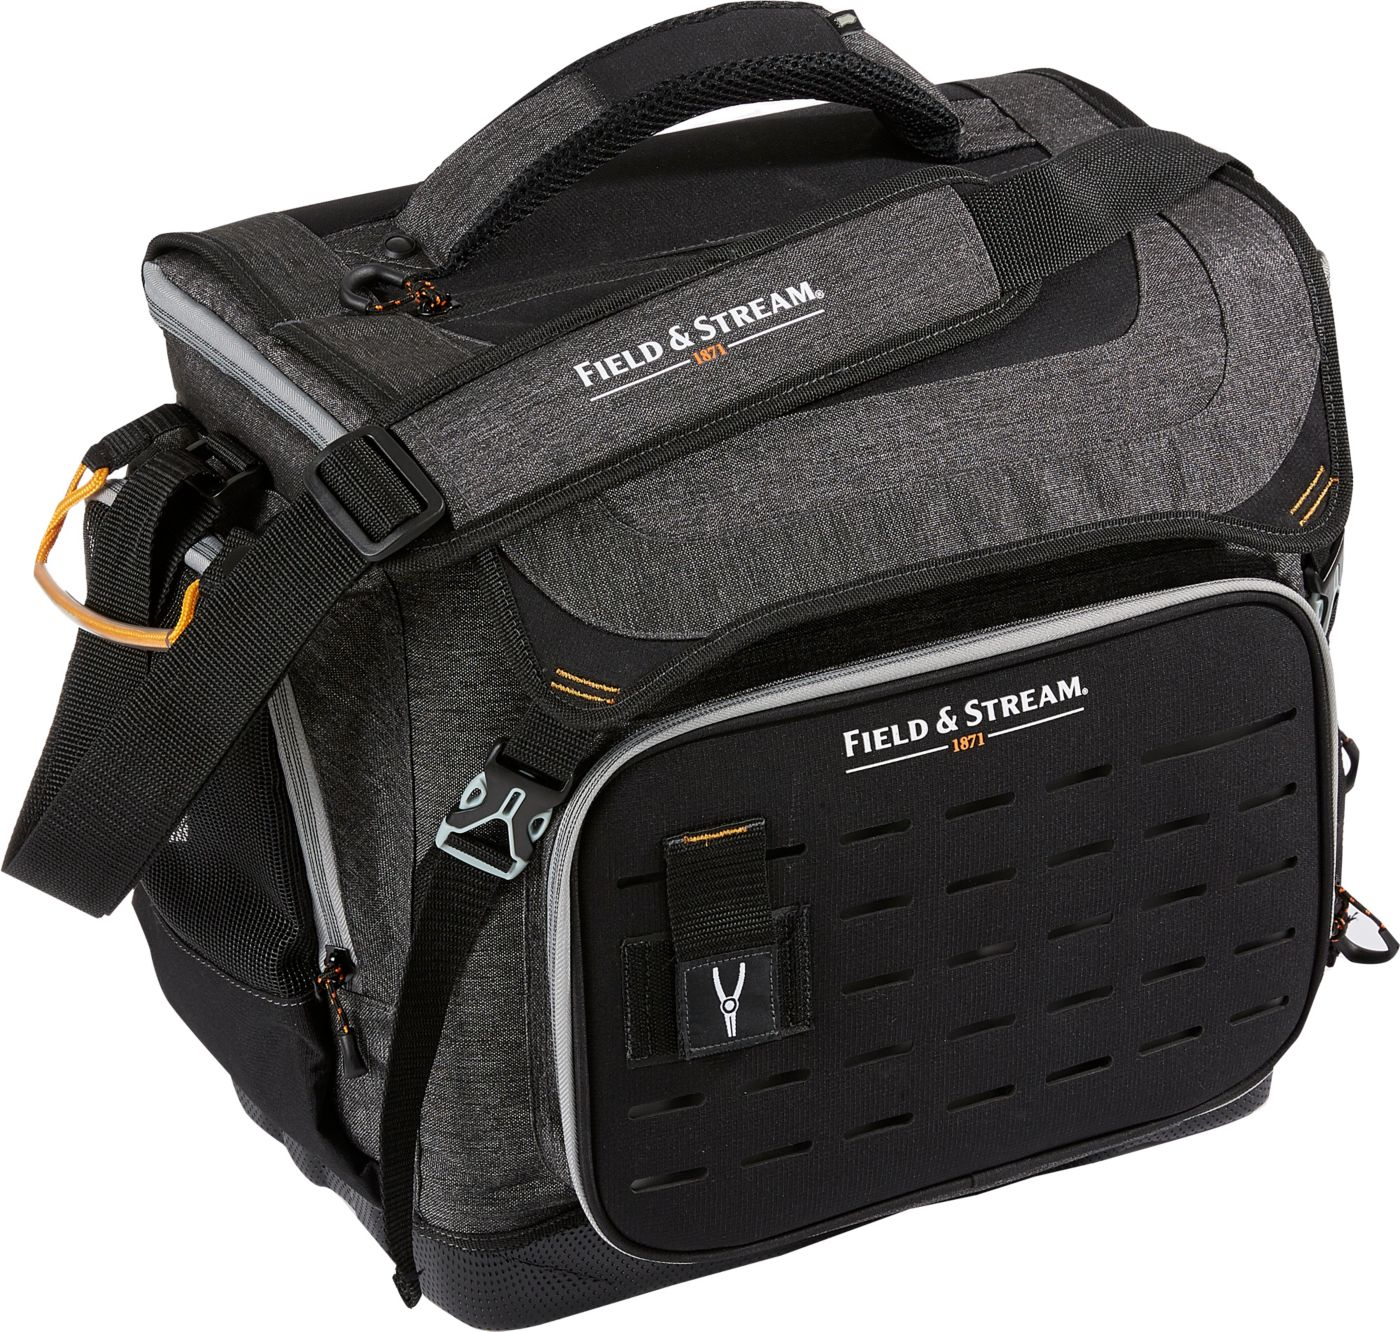 Field & Stream 370 Pro Molle Tackle Bag